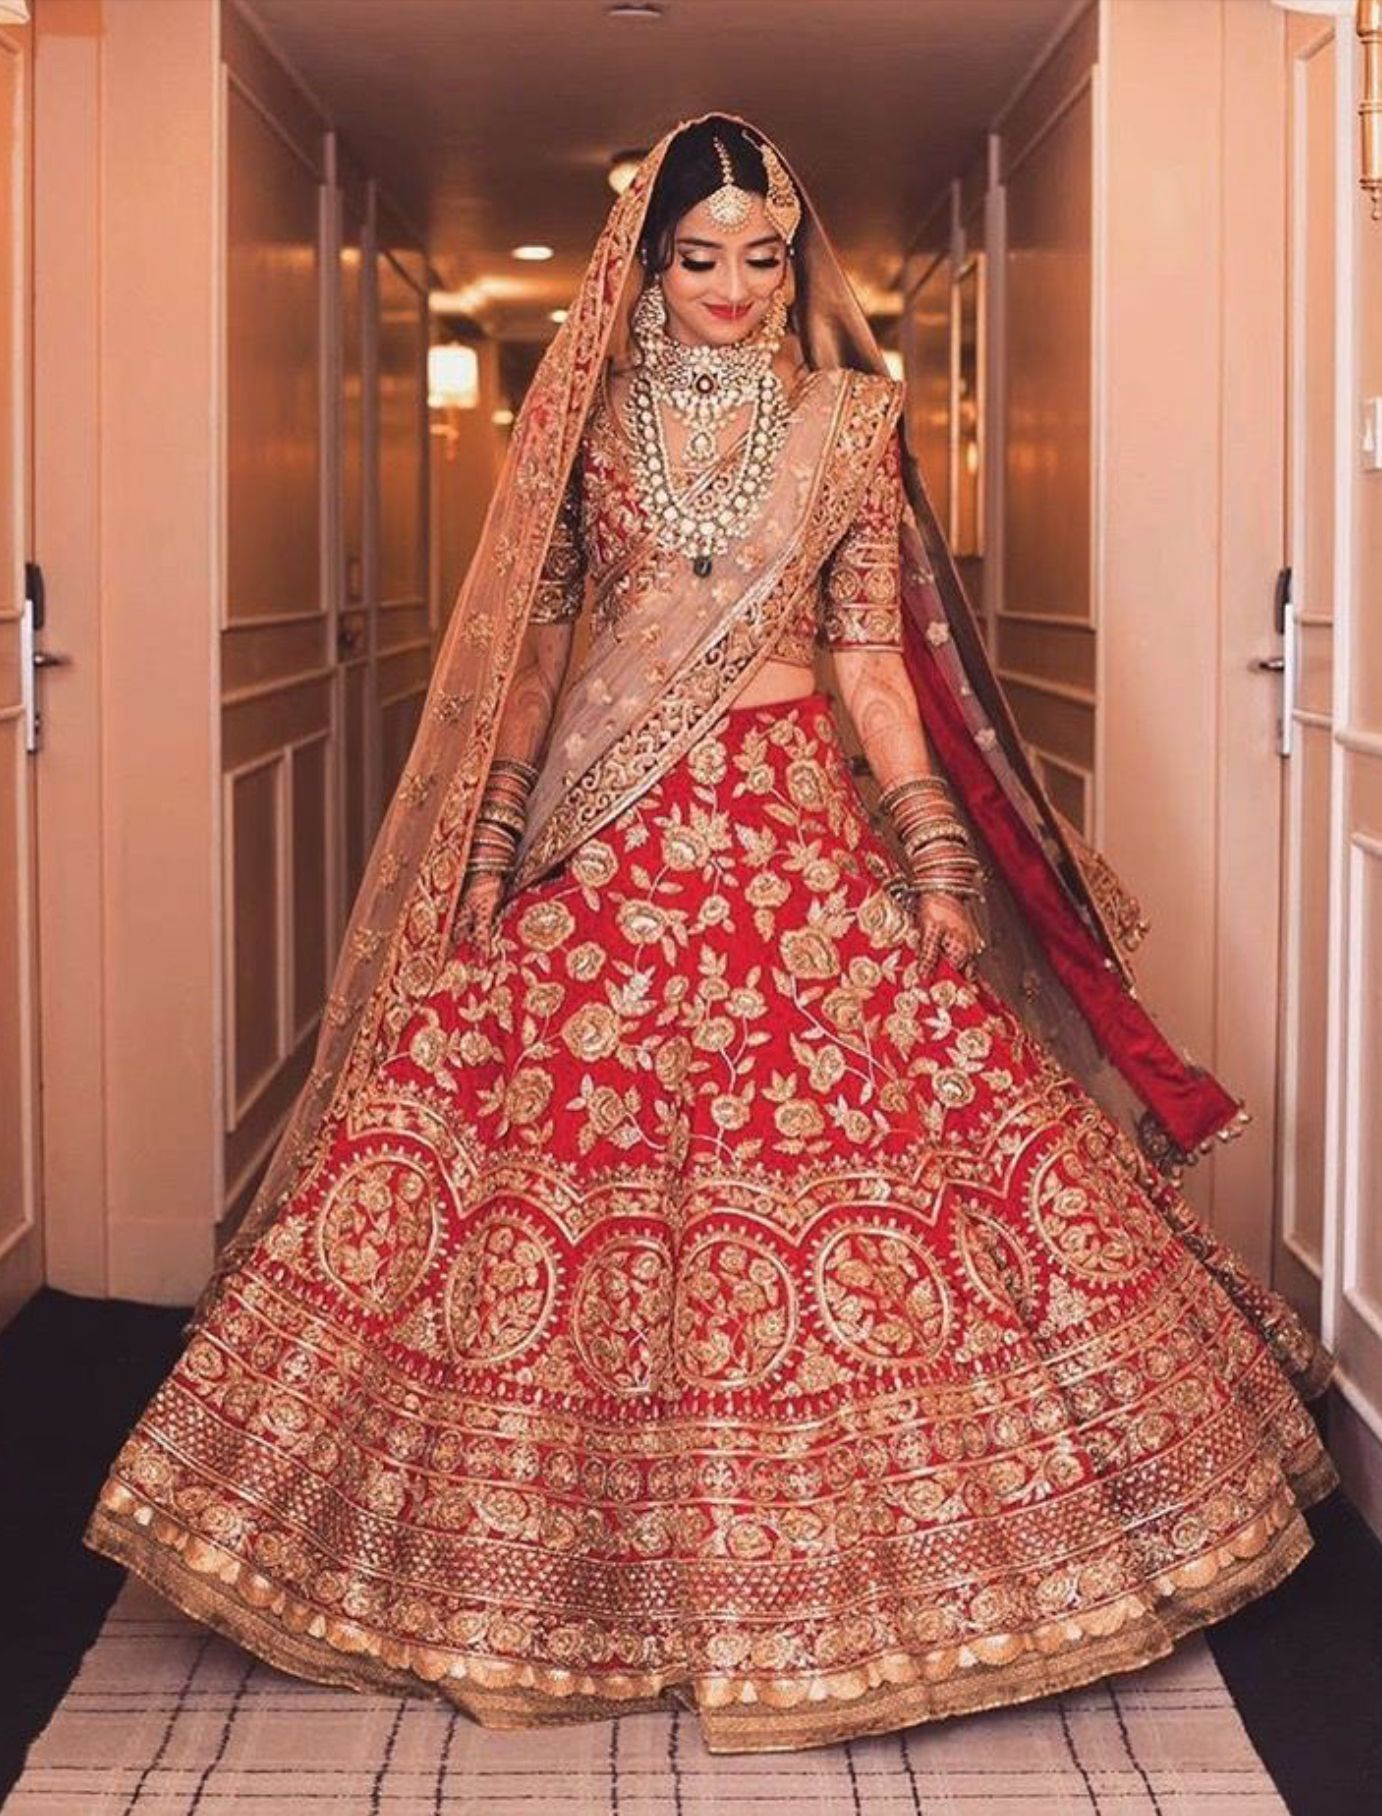 ab0a94ee7d Red pink gold two piece Indian style dress | Beautiful Clothes ...